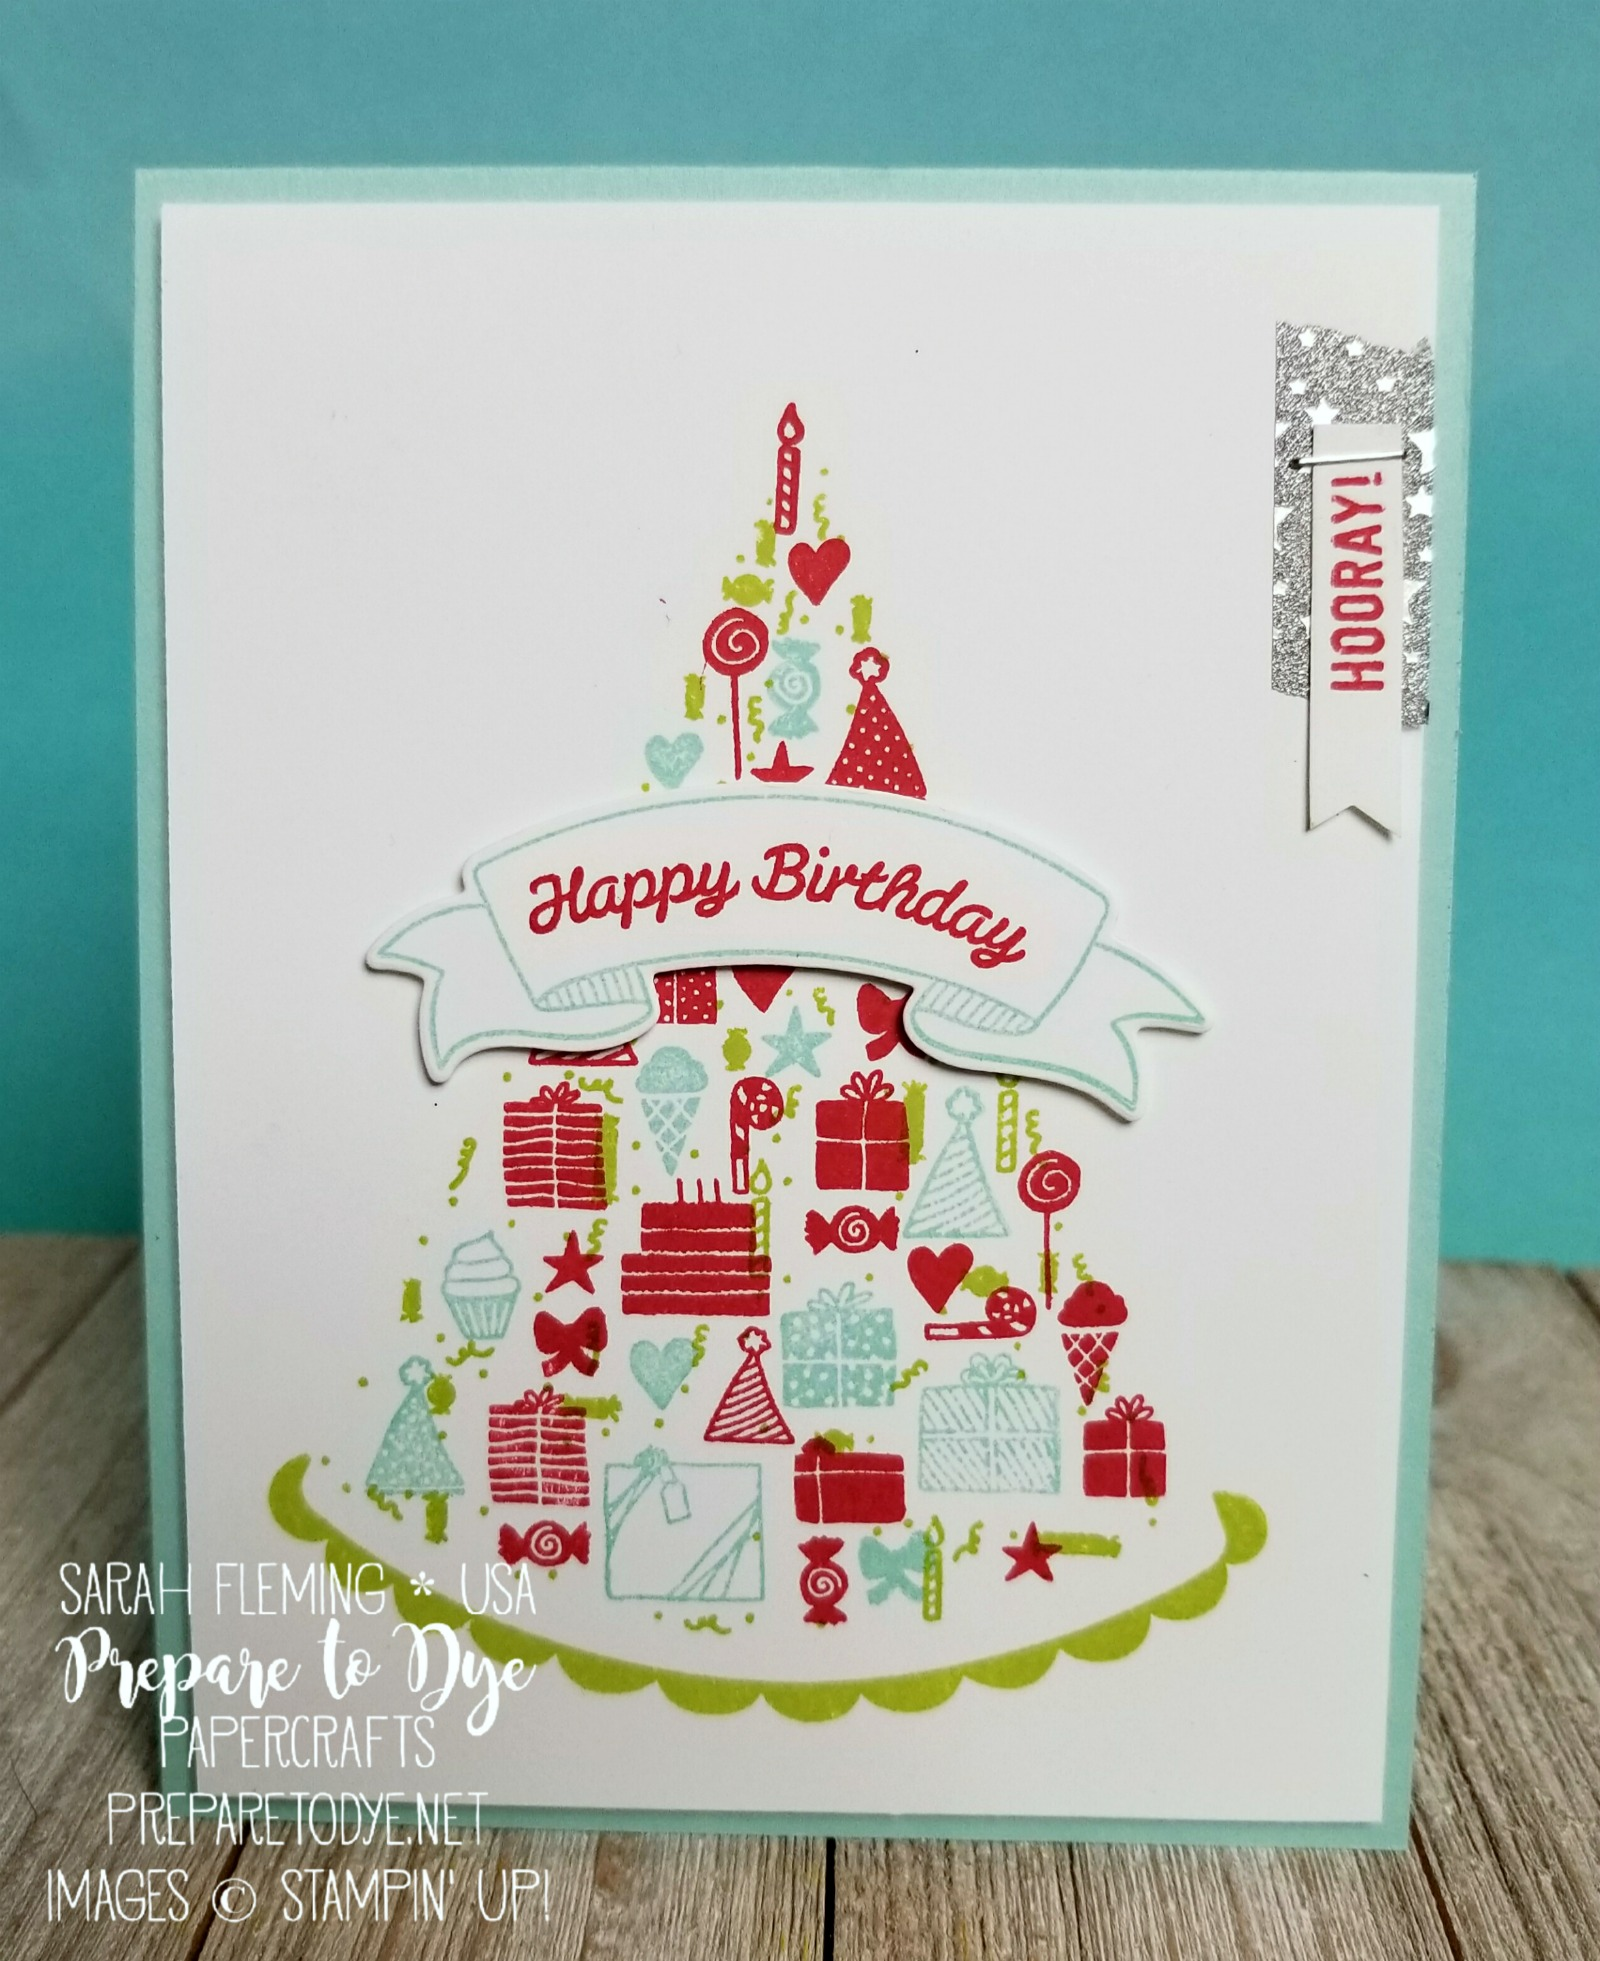 Stampin' Up! Party Hat Birthday - Occasions 2018 - Sarah Fleming - Prepare to Dye Papercrafts